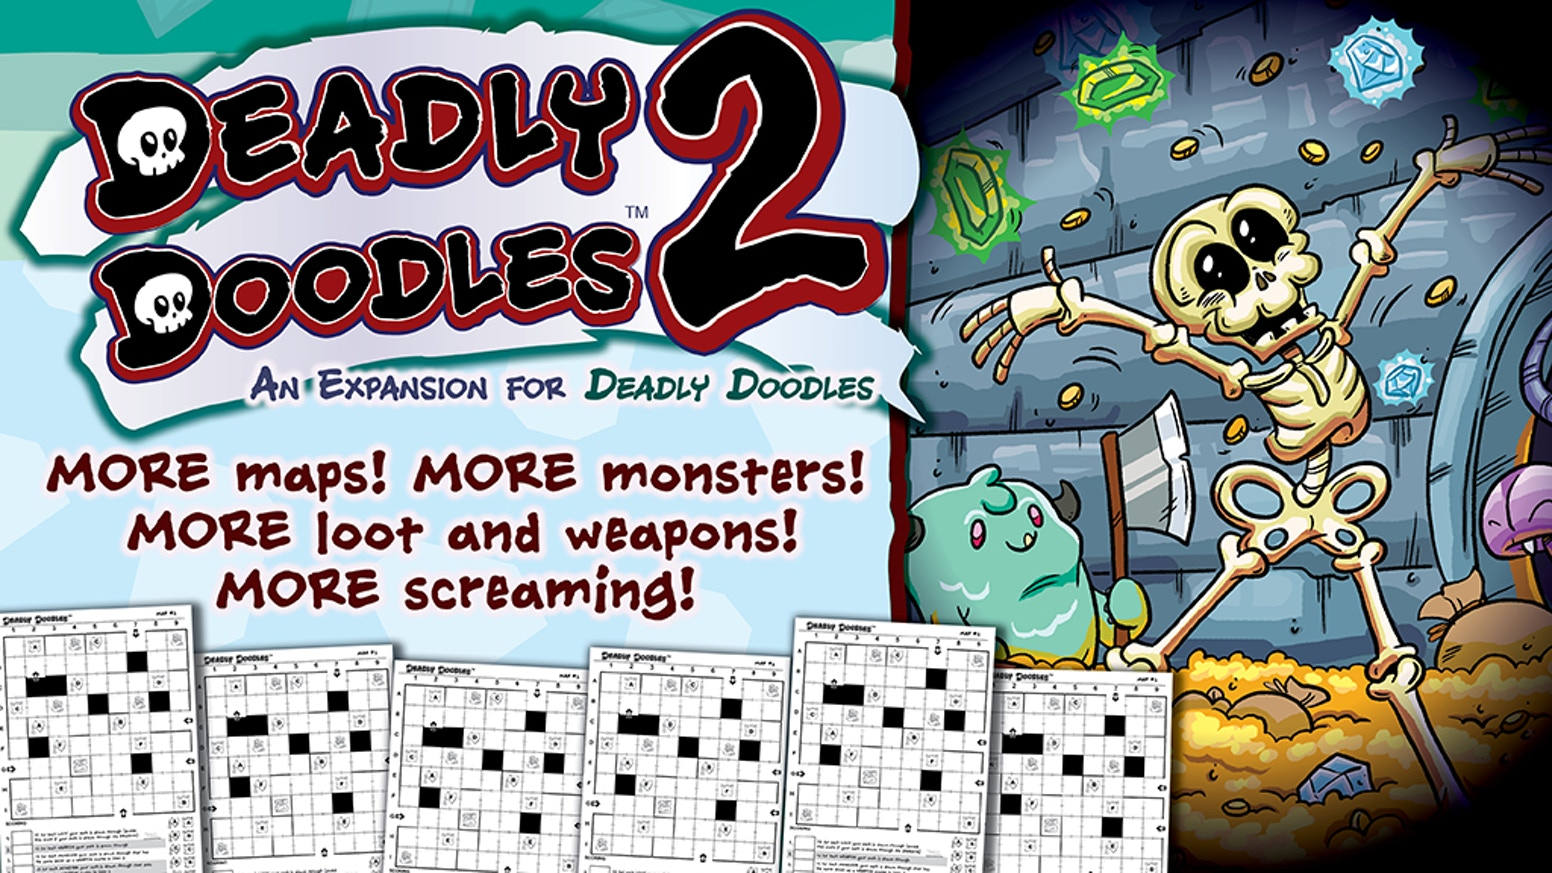 Expanding Deadly Doodles with new boards, new mechanics, and more wacky dungeon crawling fun!